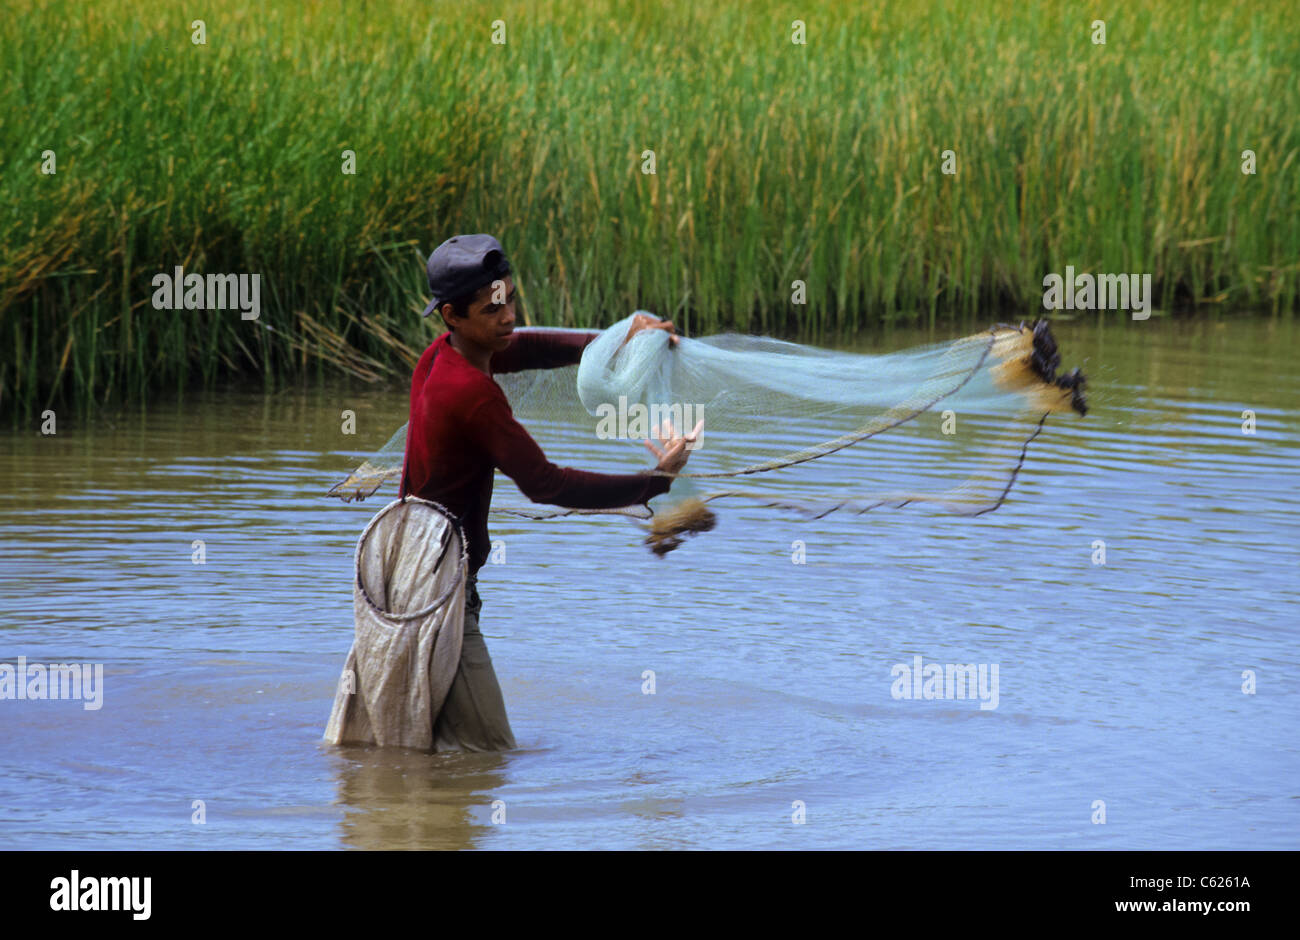 Young man in the water throwing his fishing net near Mexcaltitan Mexico - Stock Image